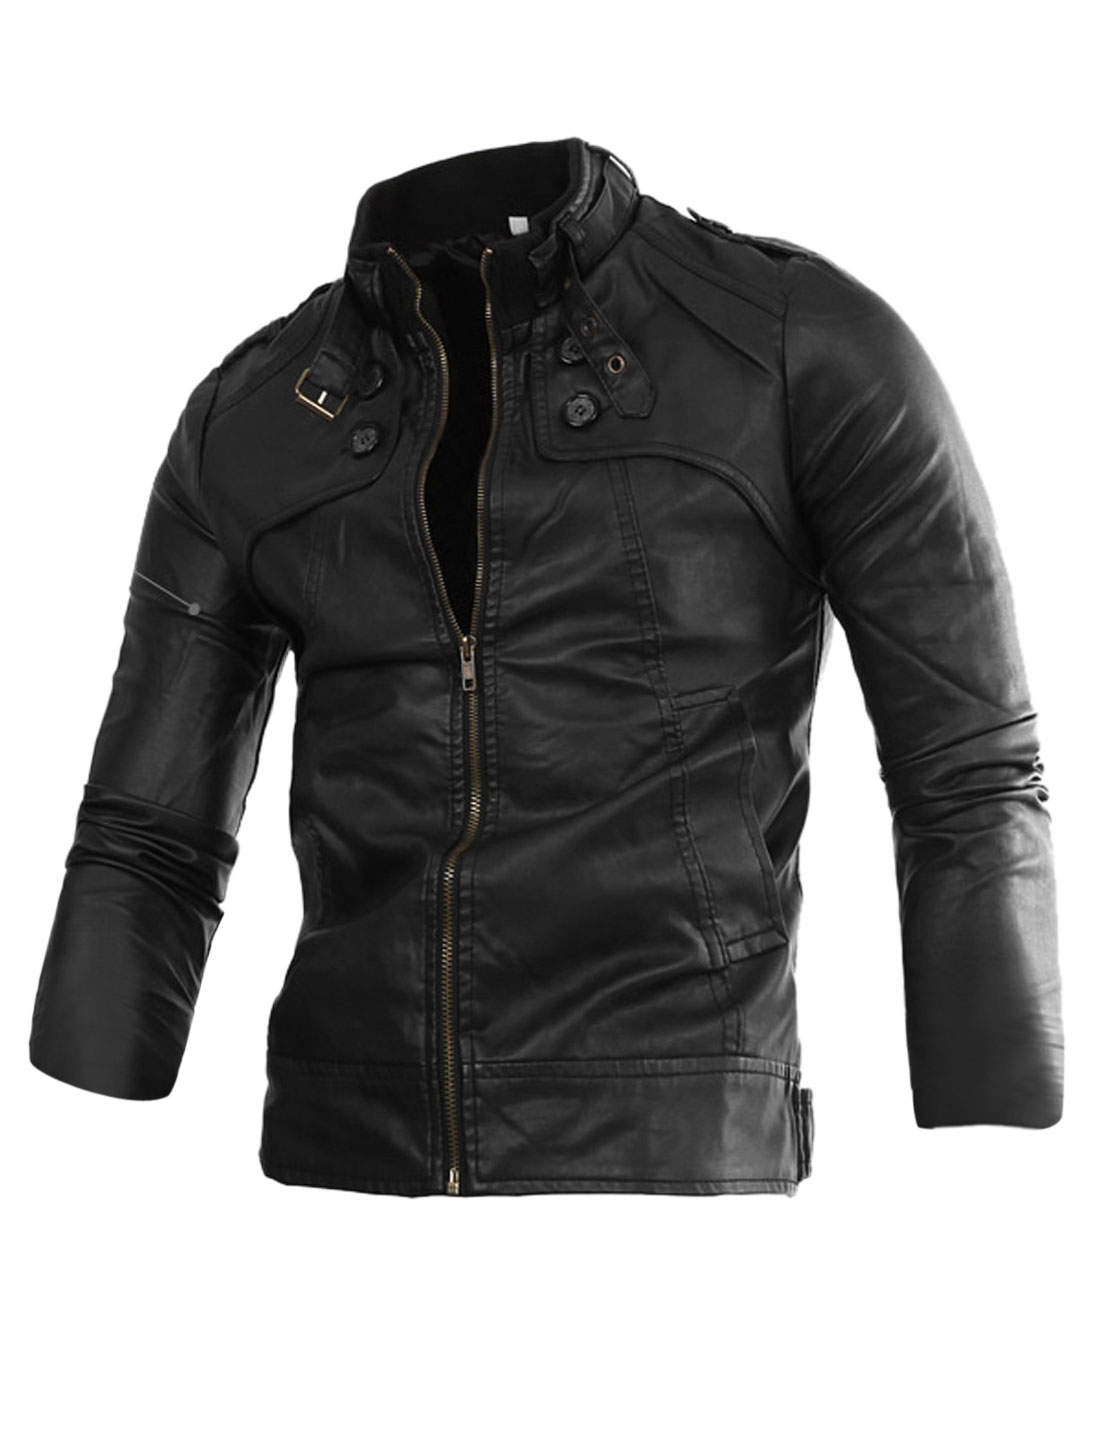 Men Button-tab Epaulets Zip Up PU Leather Motorcycle Jacket Black M